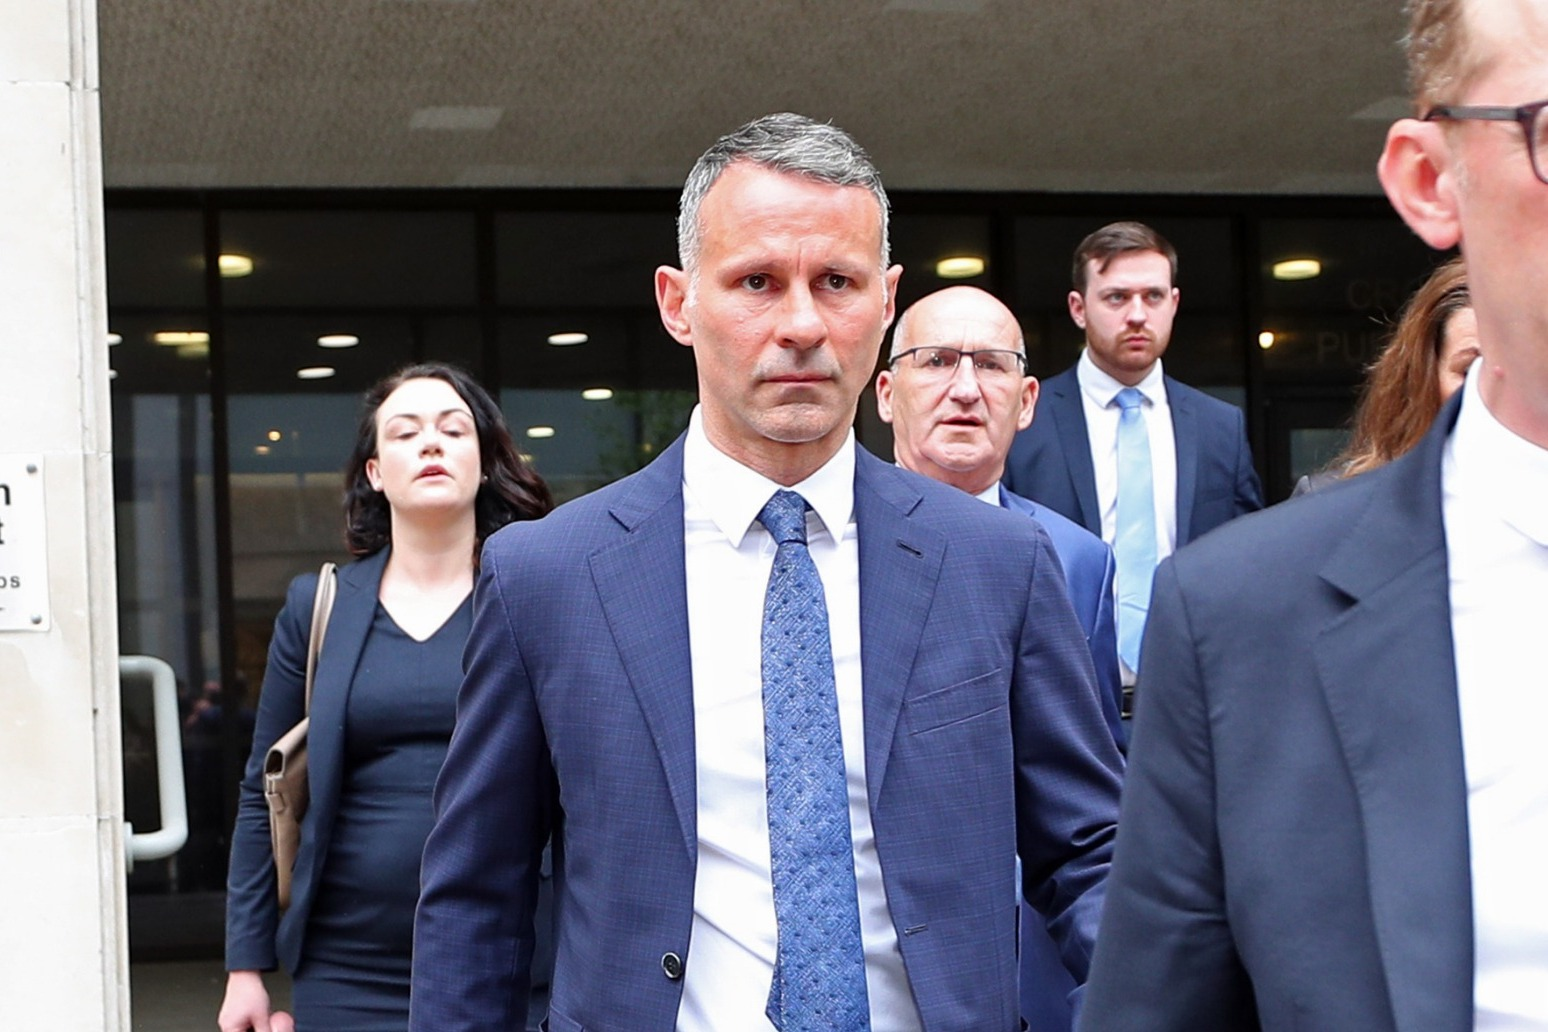 January trial date for Ryan Giggs on ex-girlfriend assault charge